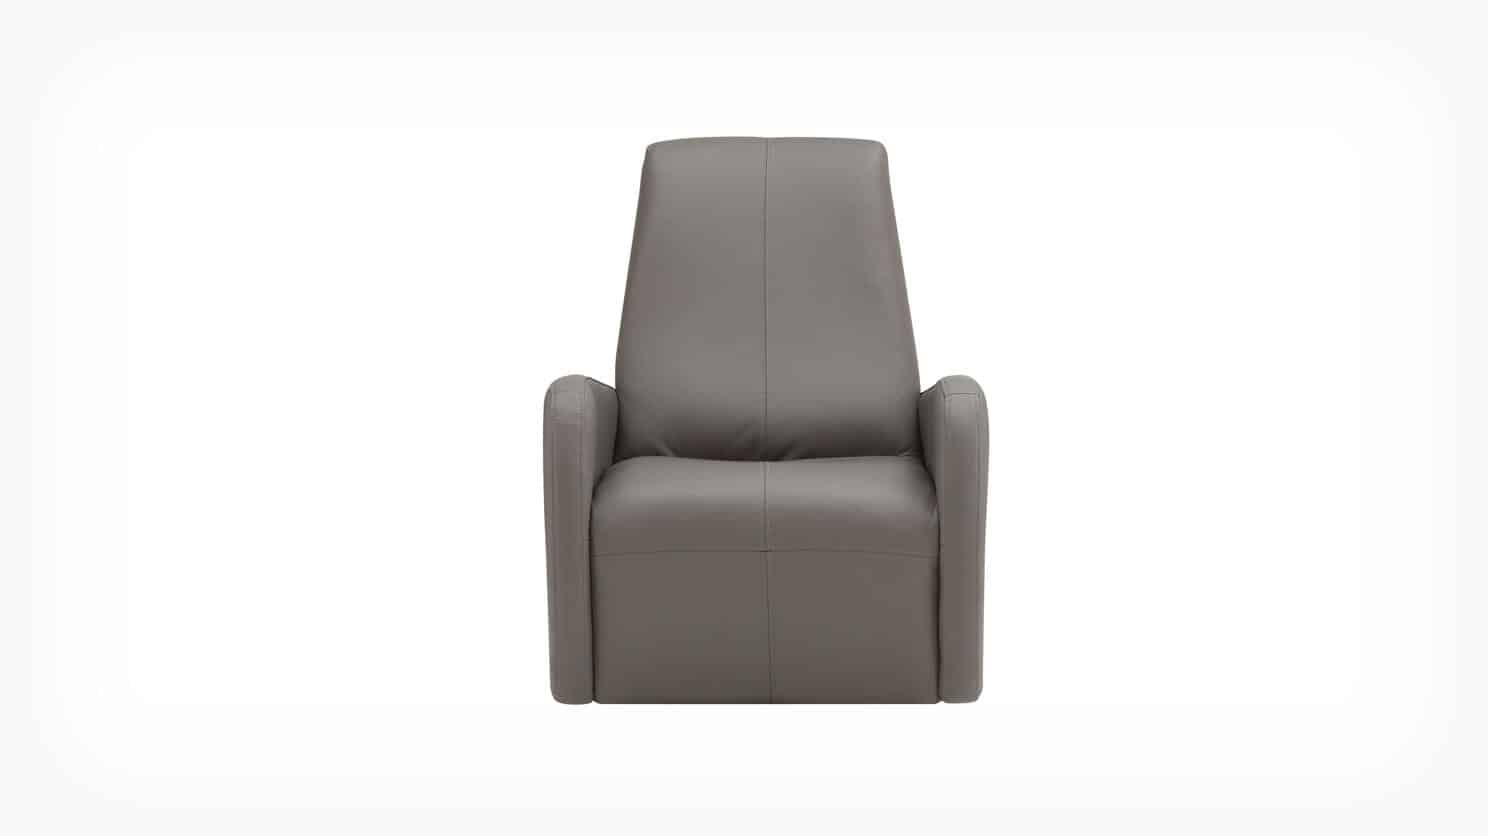 37073 02 1 chairs karbon chair disco leather front